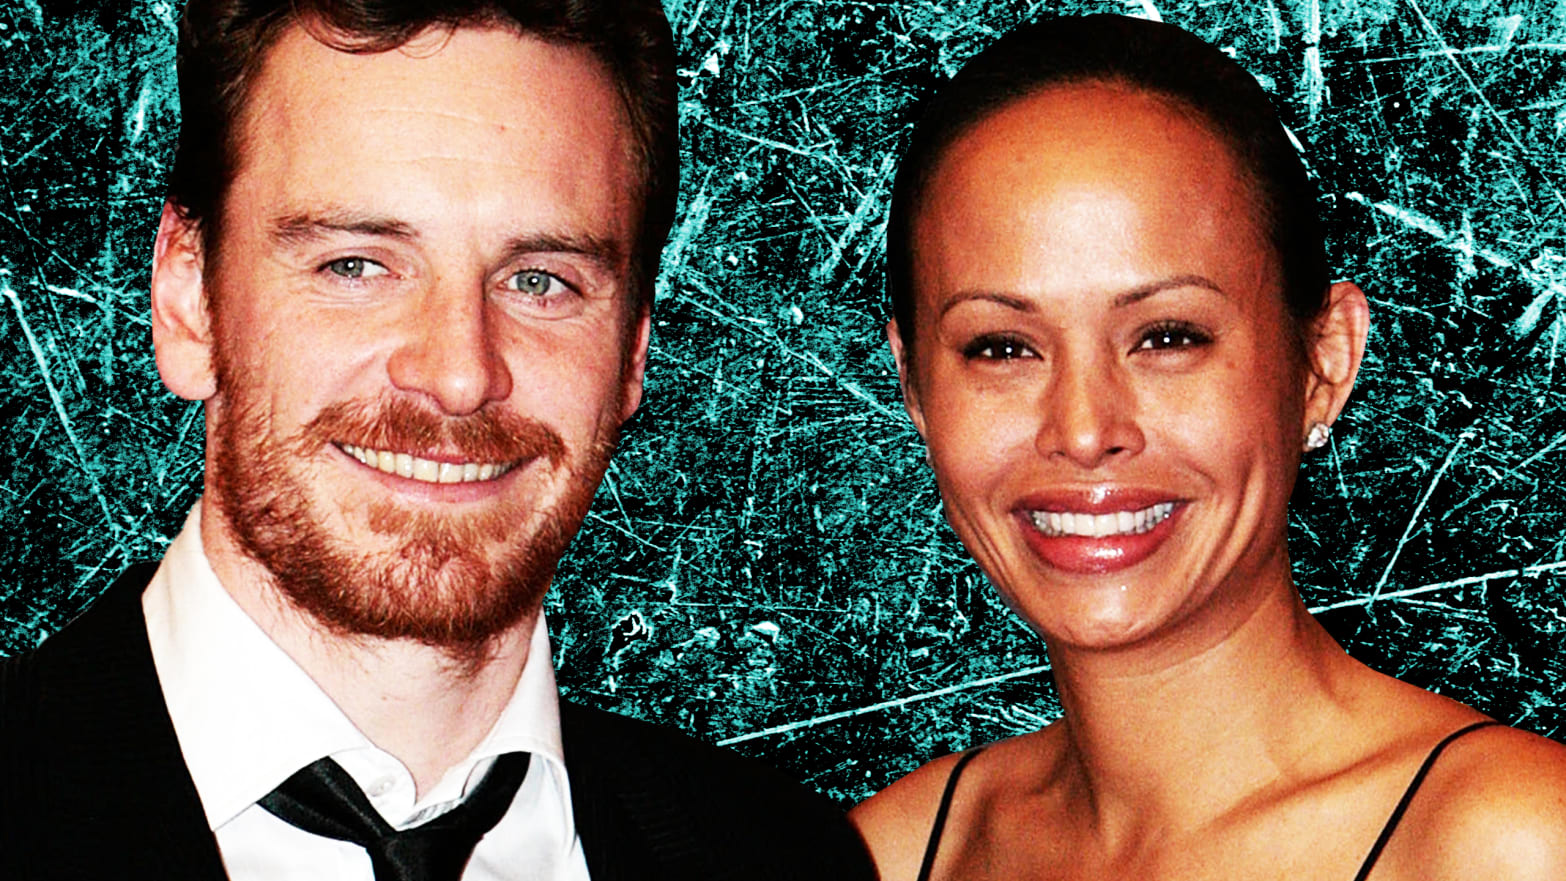 The Shocking Abuse Allegations Against Michael Fassbender